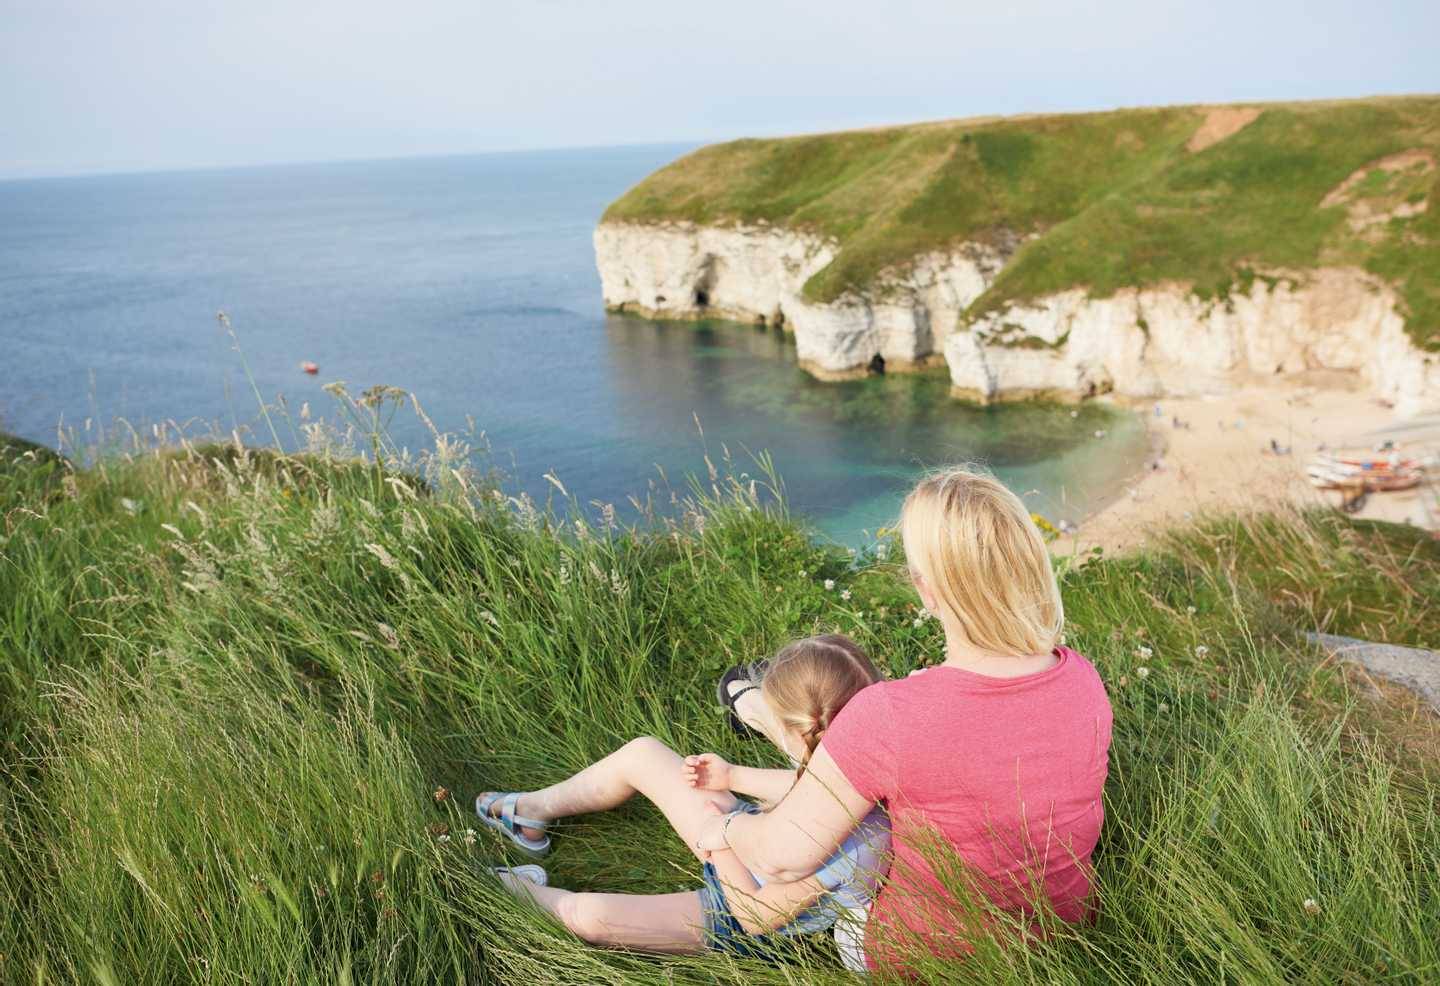 A mother and daughter sitting on a grassy area at the top of a cliff at Thornwick Bay Holiday Village overlooking the beach in a bay below